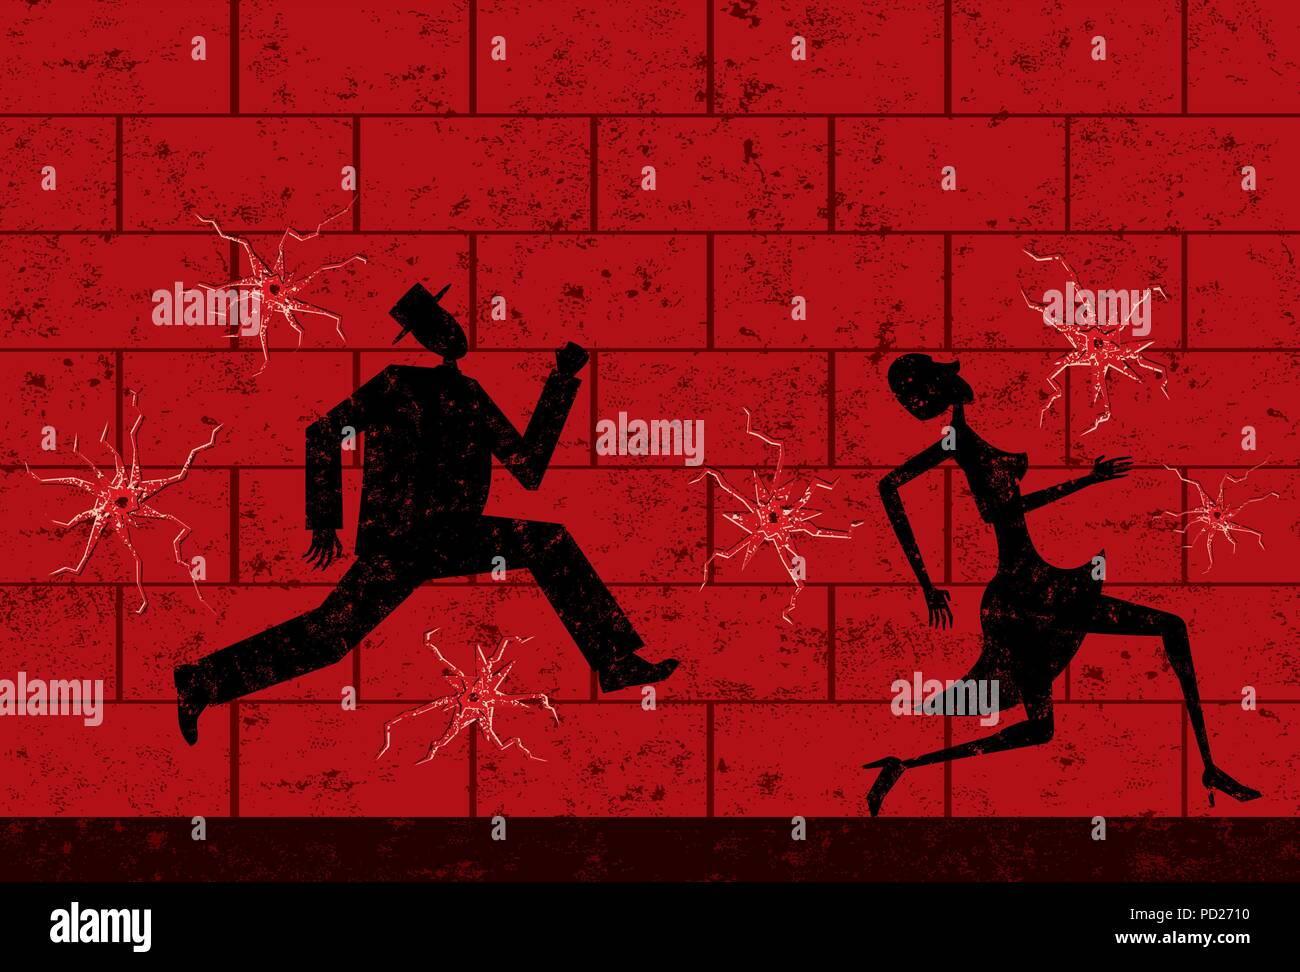 Dodging Bullets A man and woman running and dodging bullets. - Stock Image